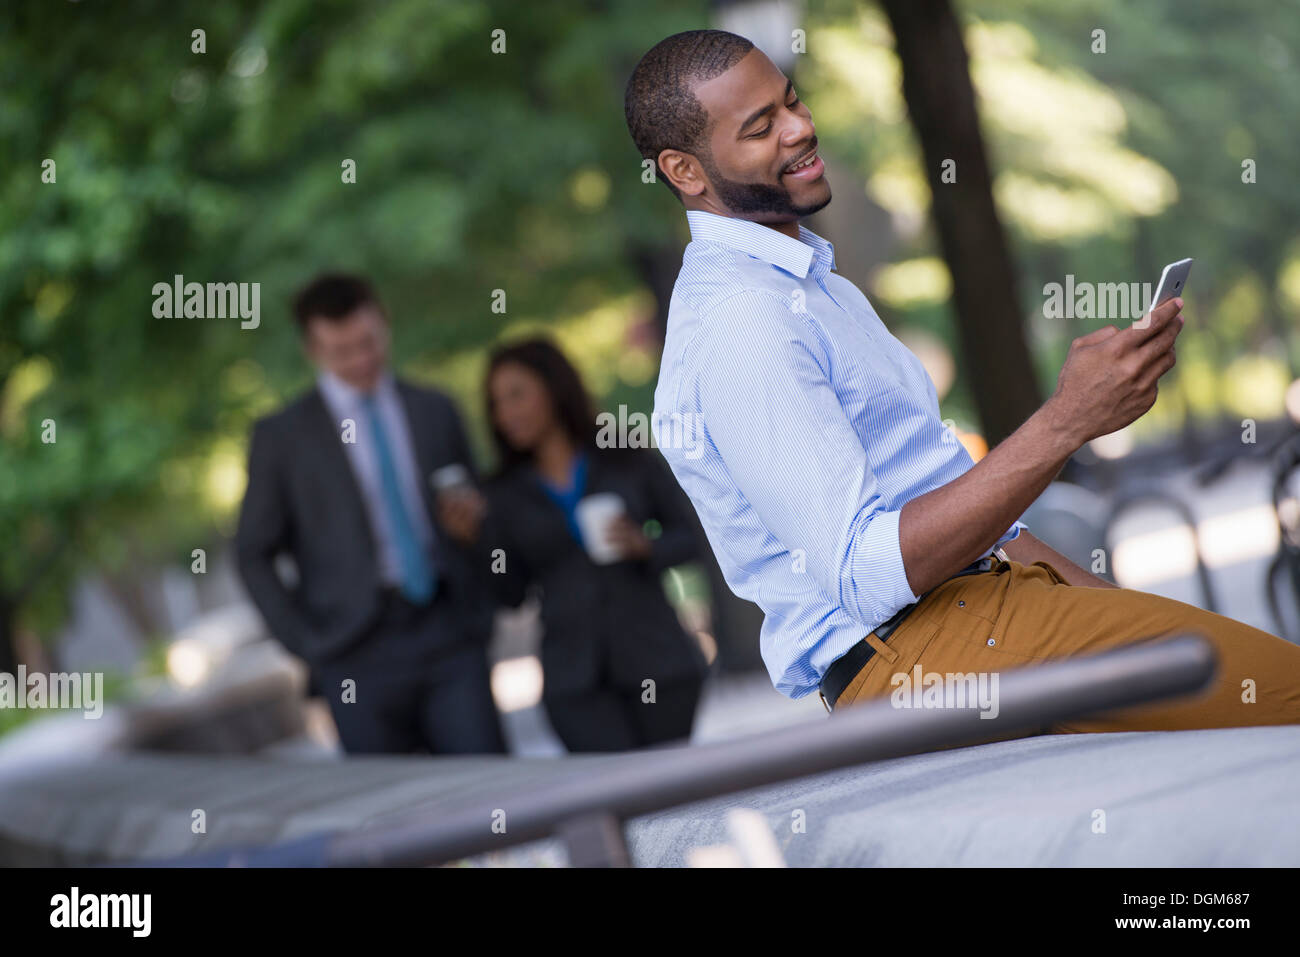 Summer in the city. A young man in a grey suit and blue tie walking with a woman in a suit. A man seated on a bench. - Stock Image